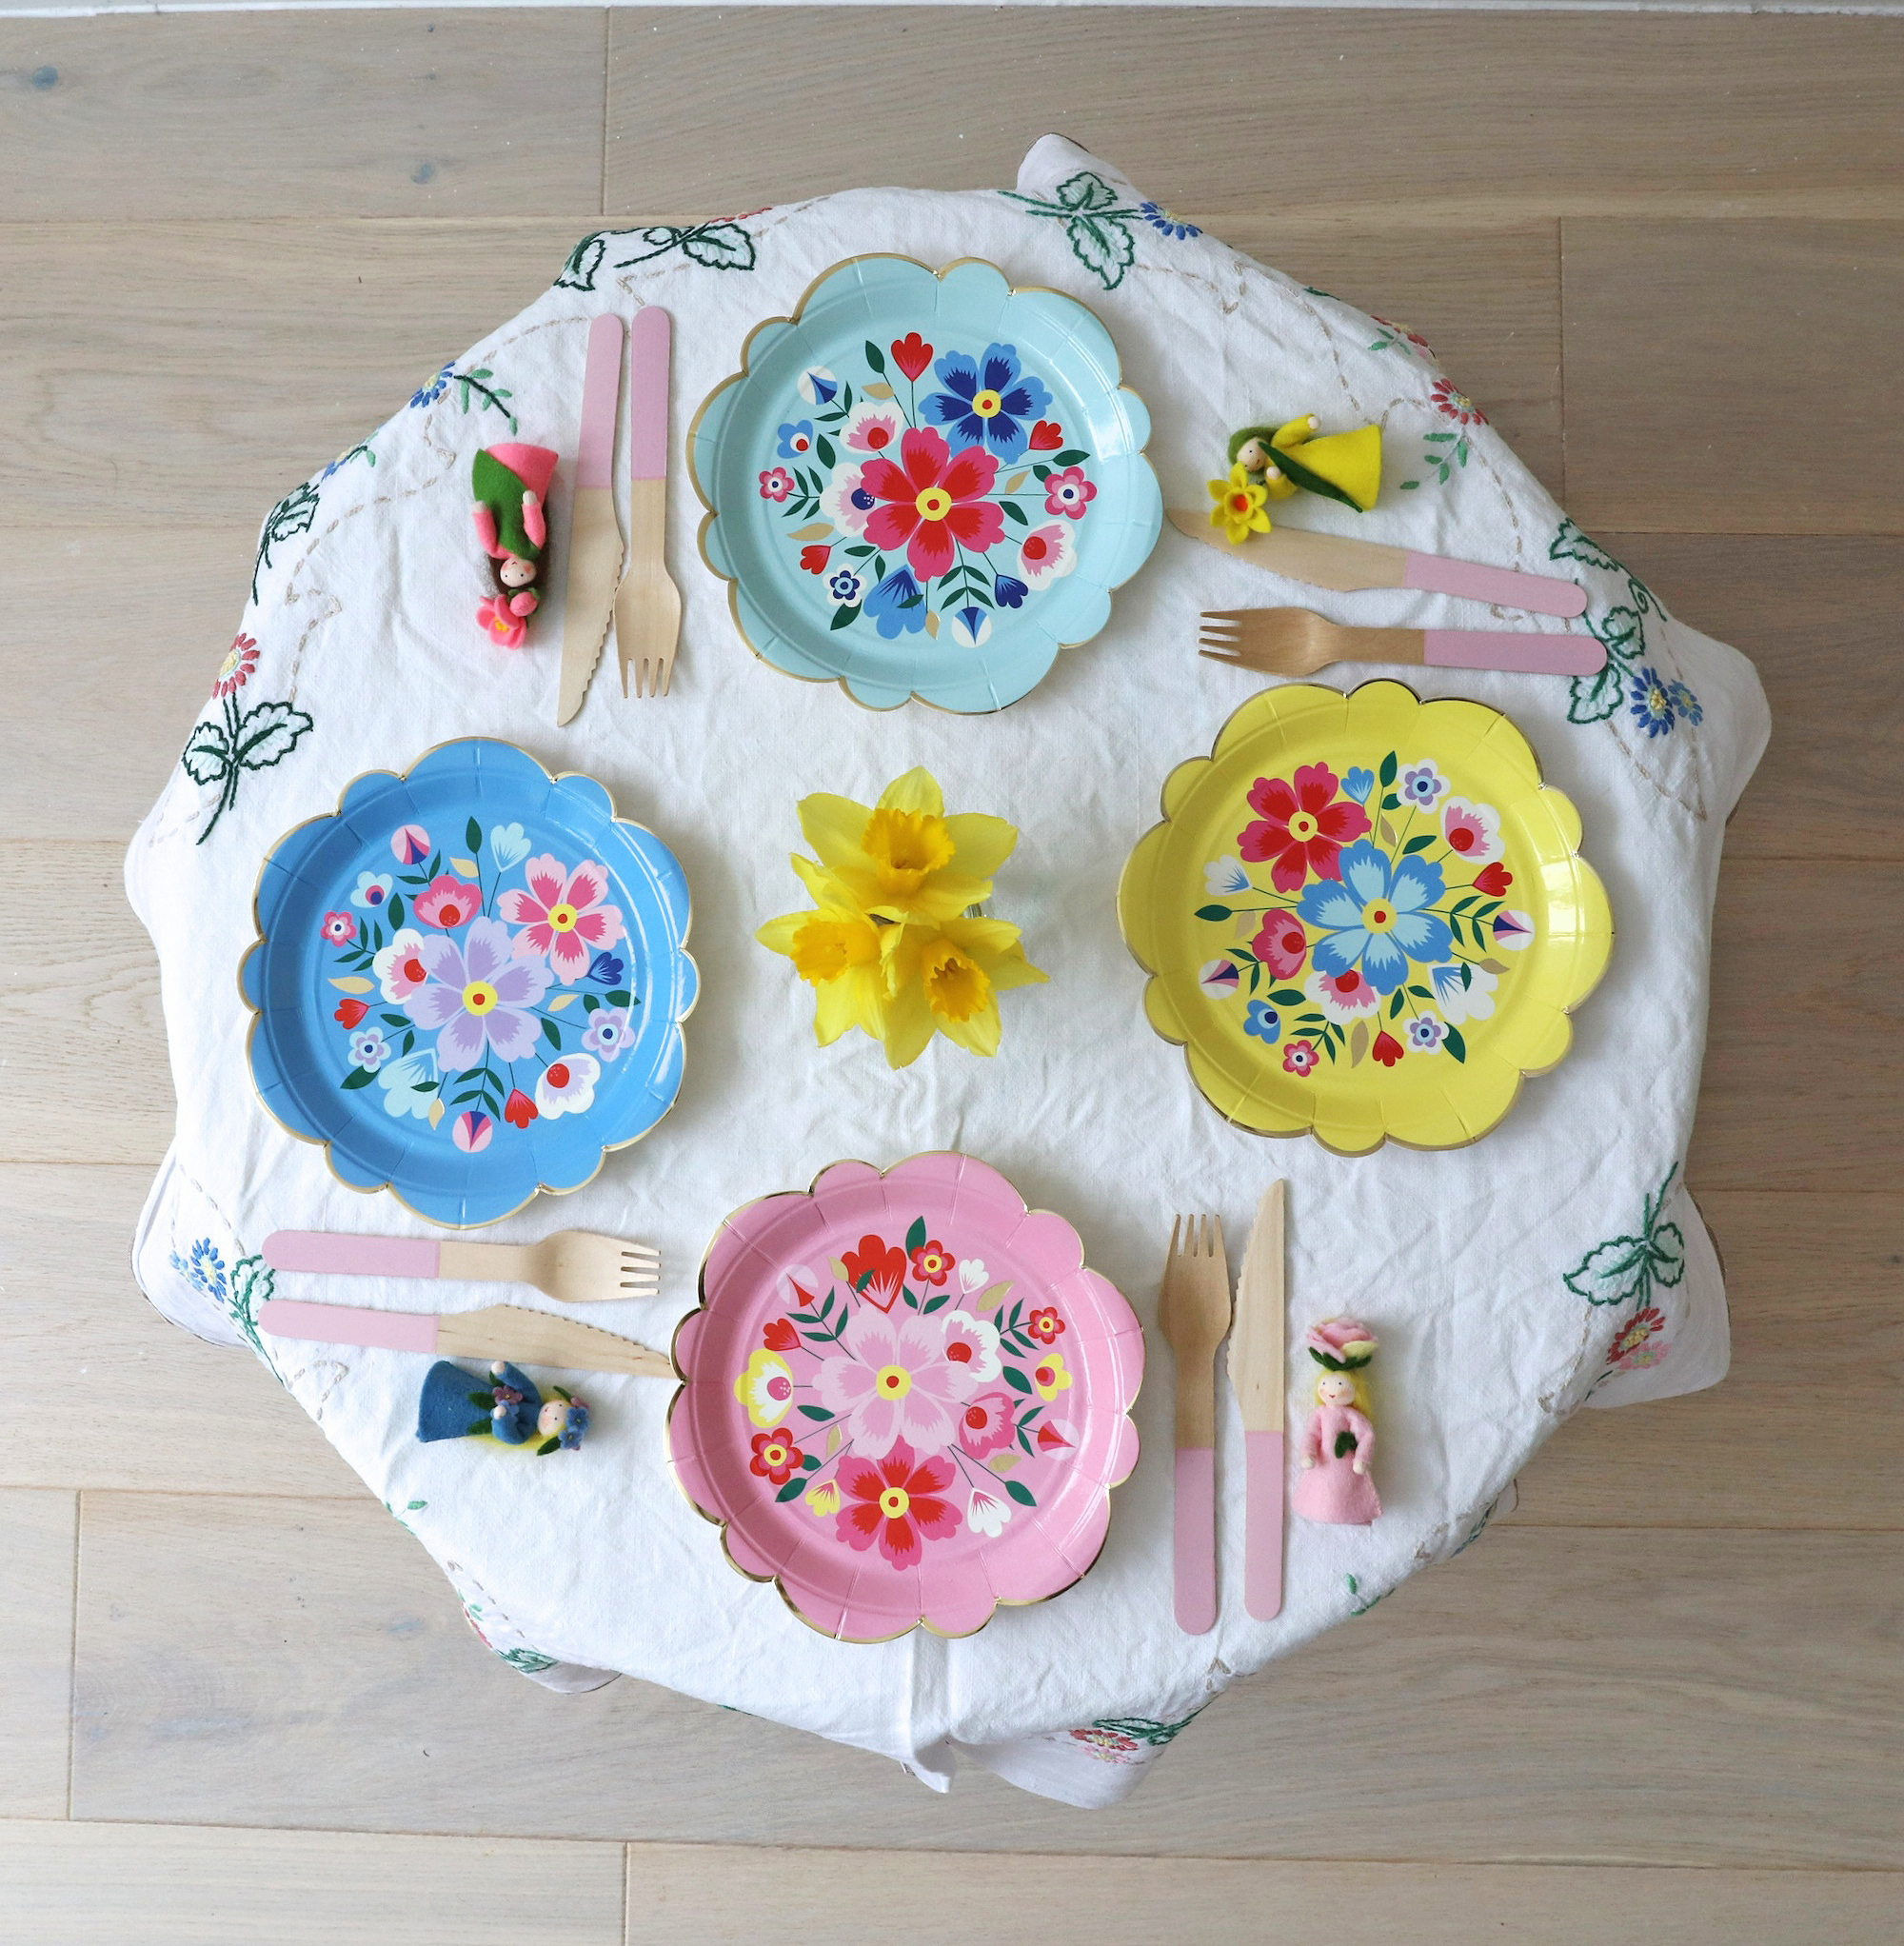 Meri_meri_party_flowers_plates